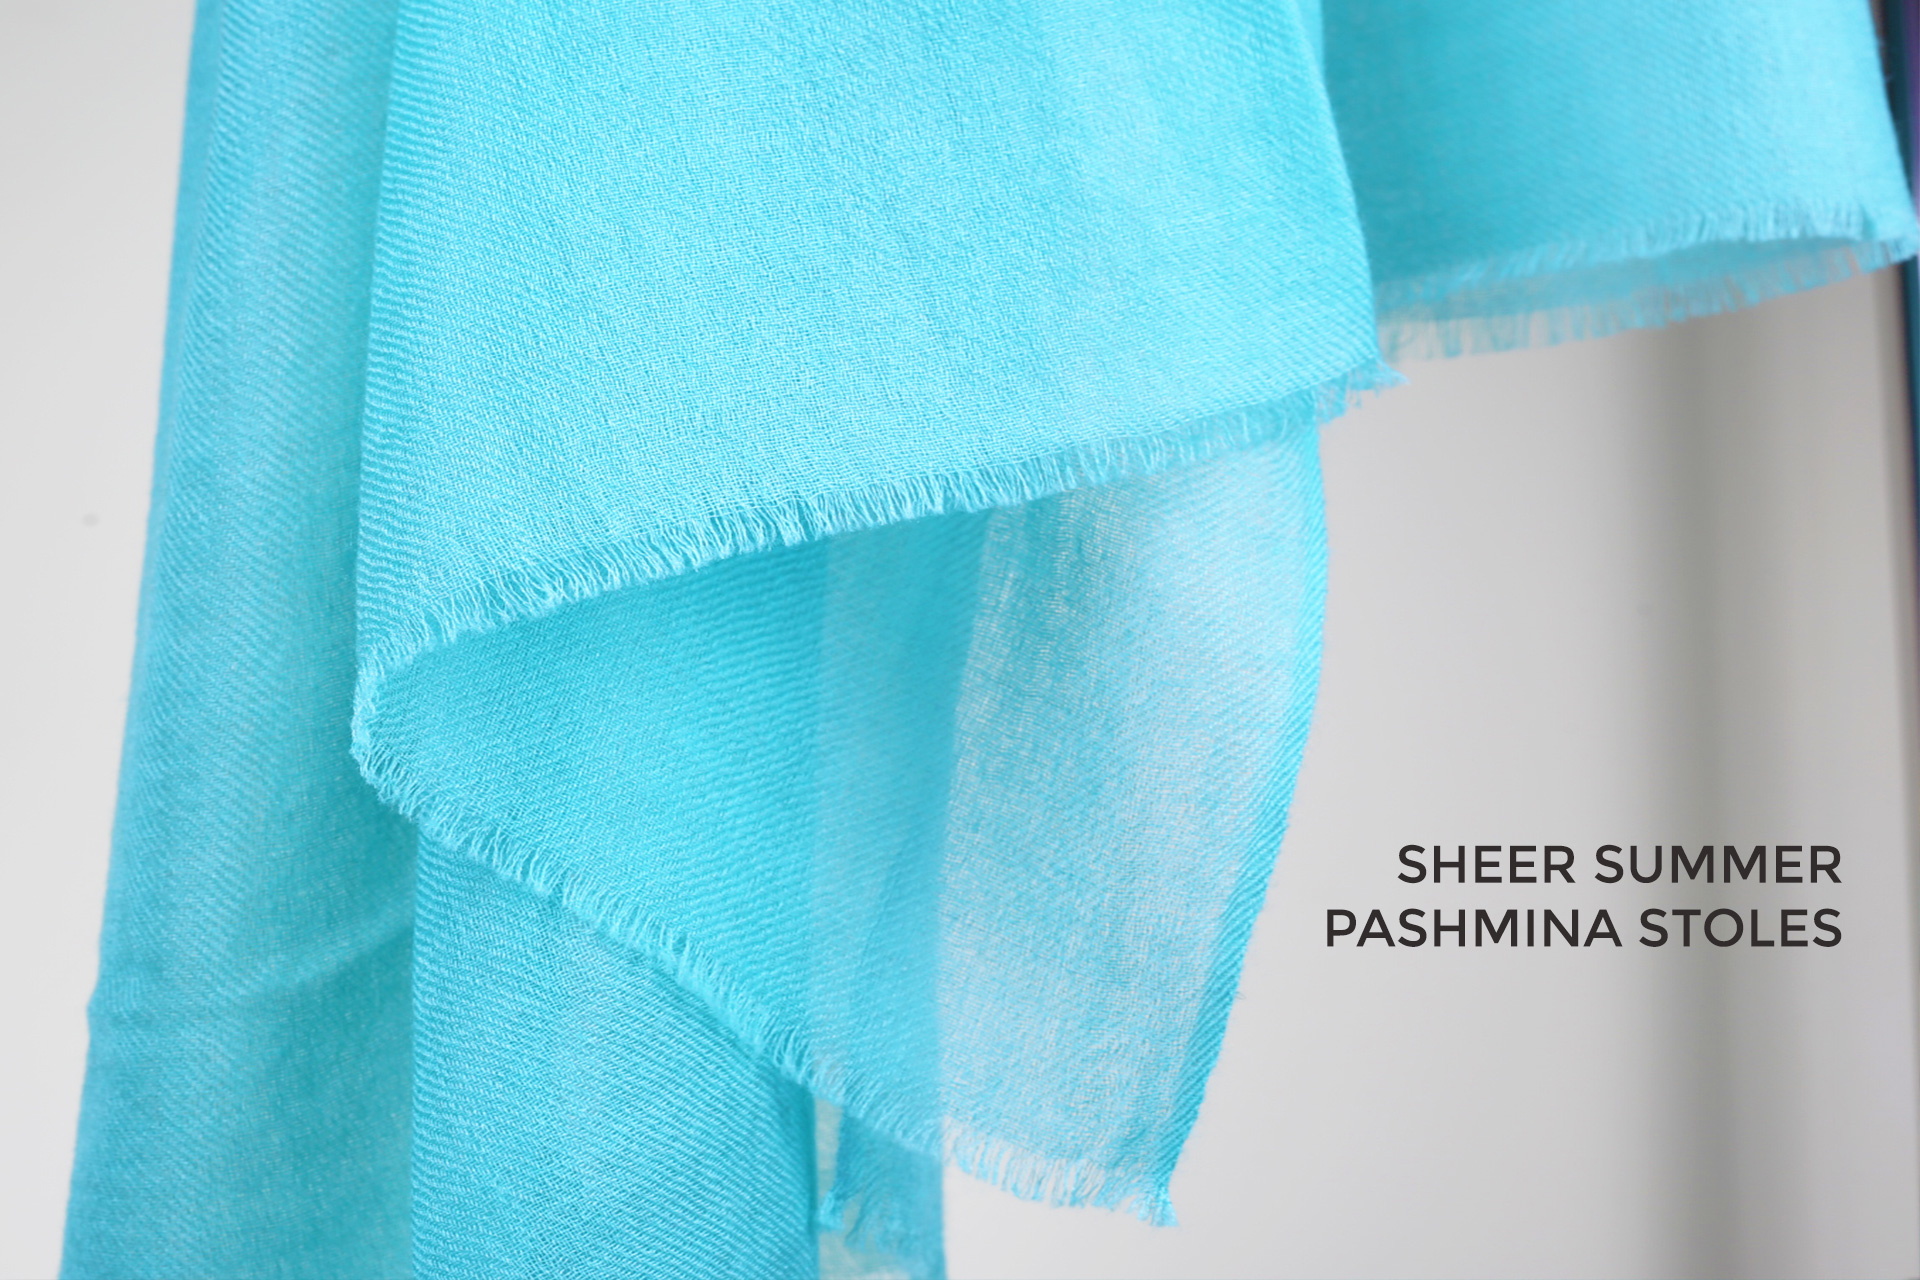 From winters to summers, Pashmina scarves still timeless